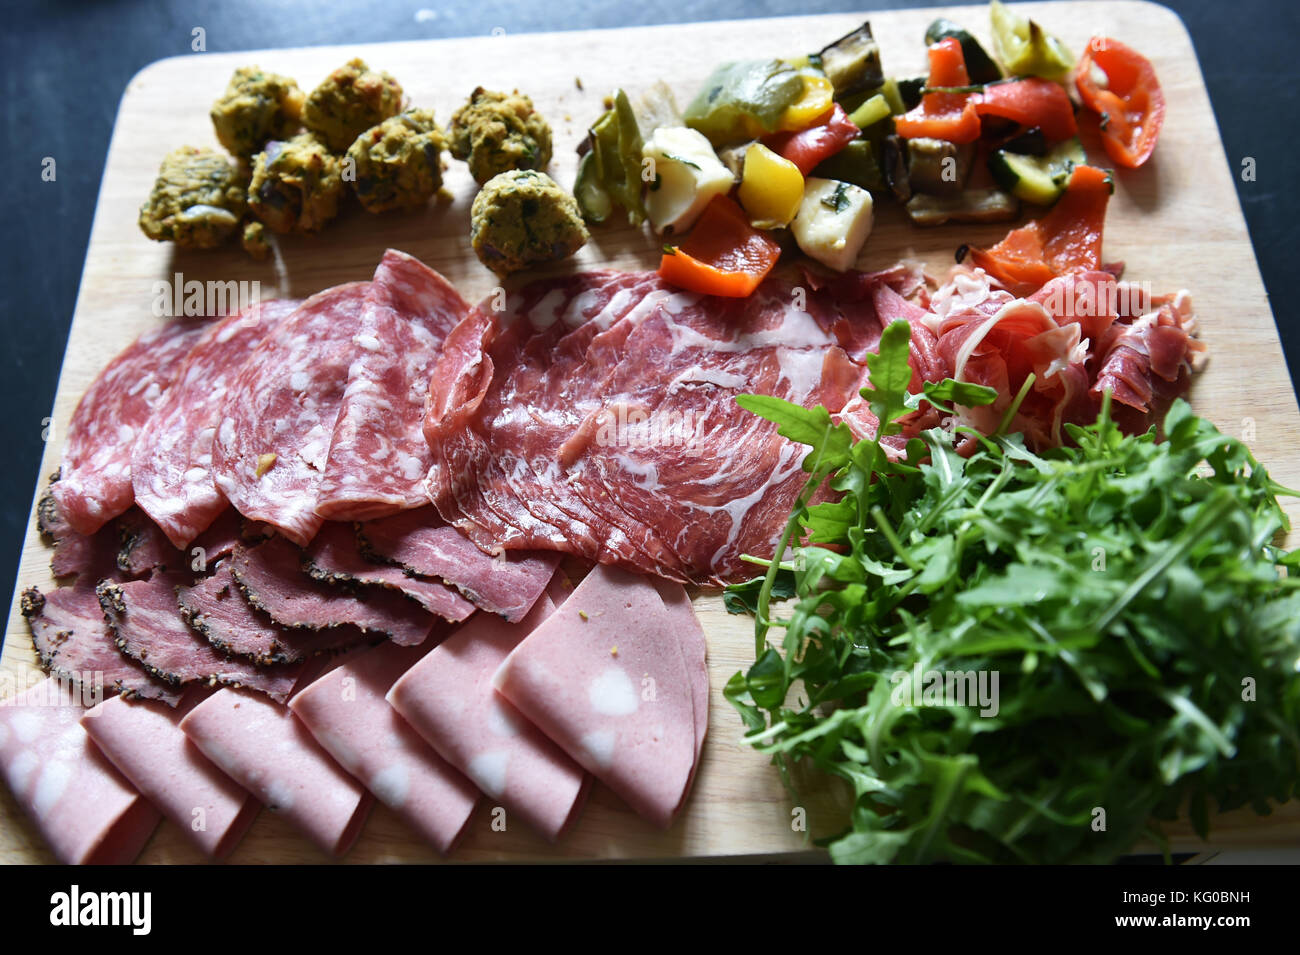 Sharing platter of cold meats and vegetables at a wedding - Stock Image